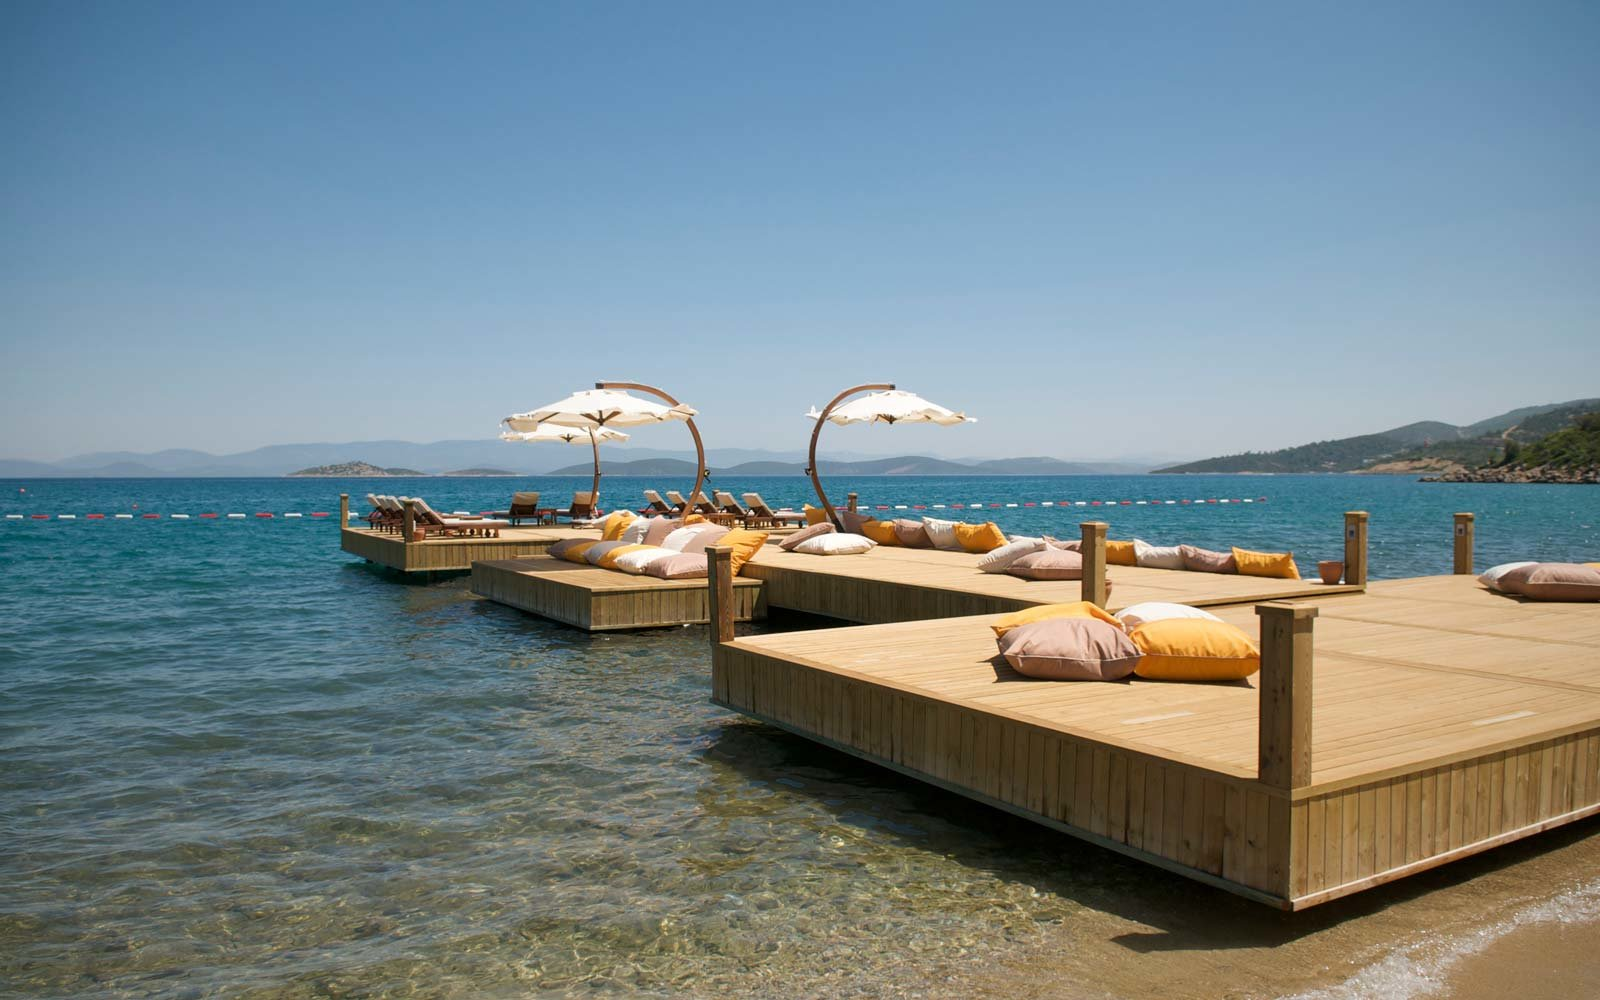 Floating Platform in Bodrum, Turkey